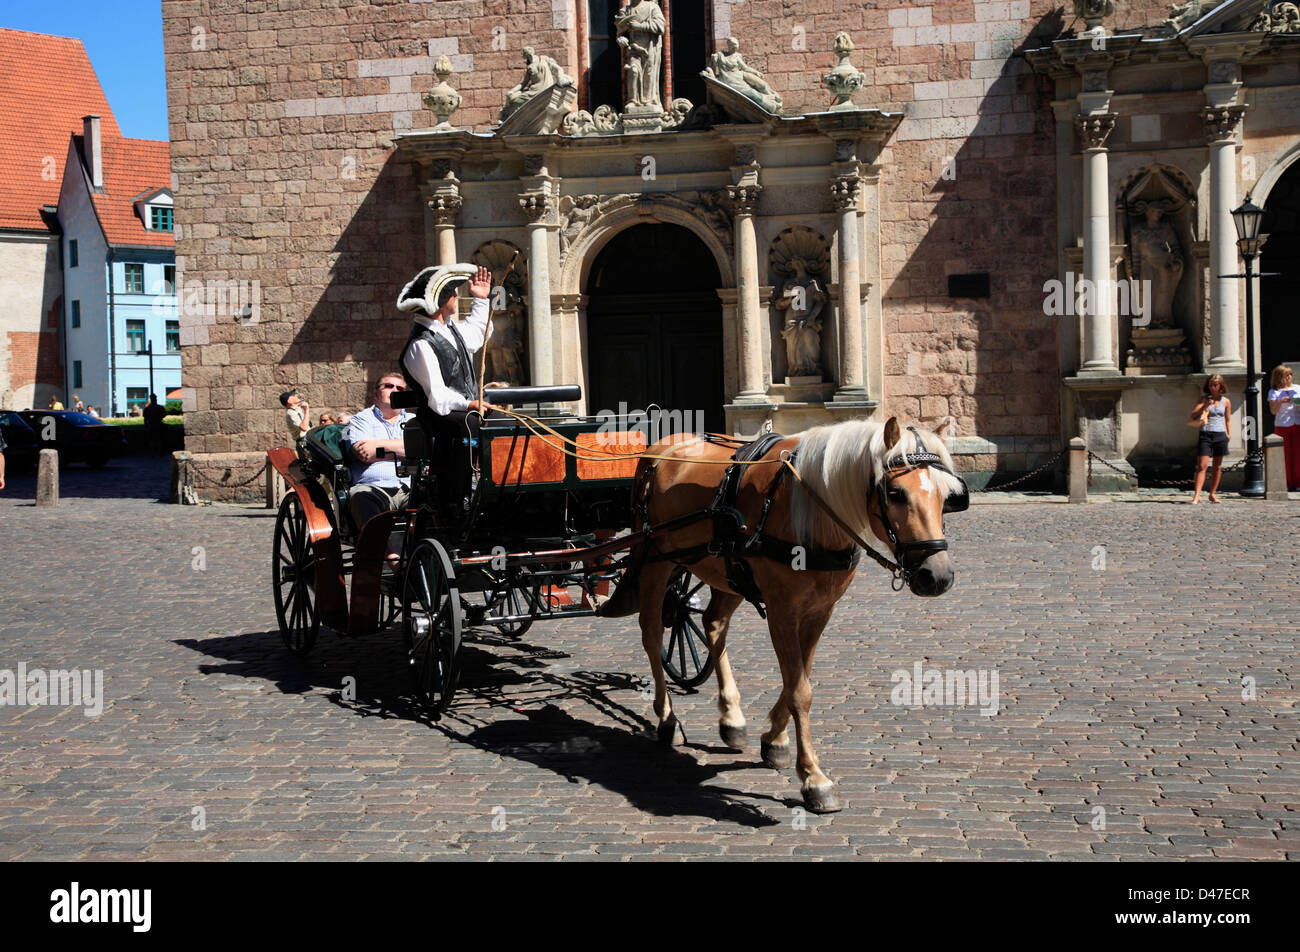 Horse-drawn carriage at  St. Peters church, Riga, Latvia - Stock Image